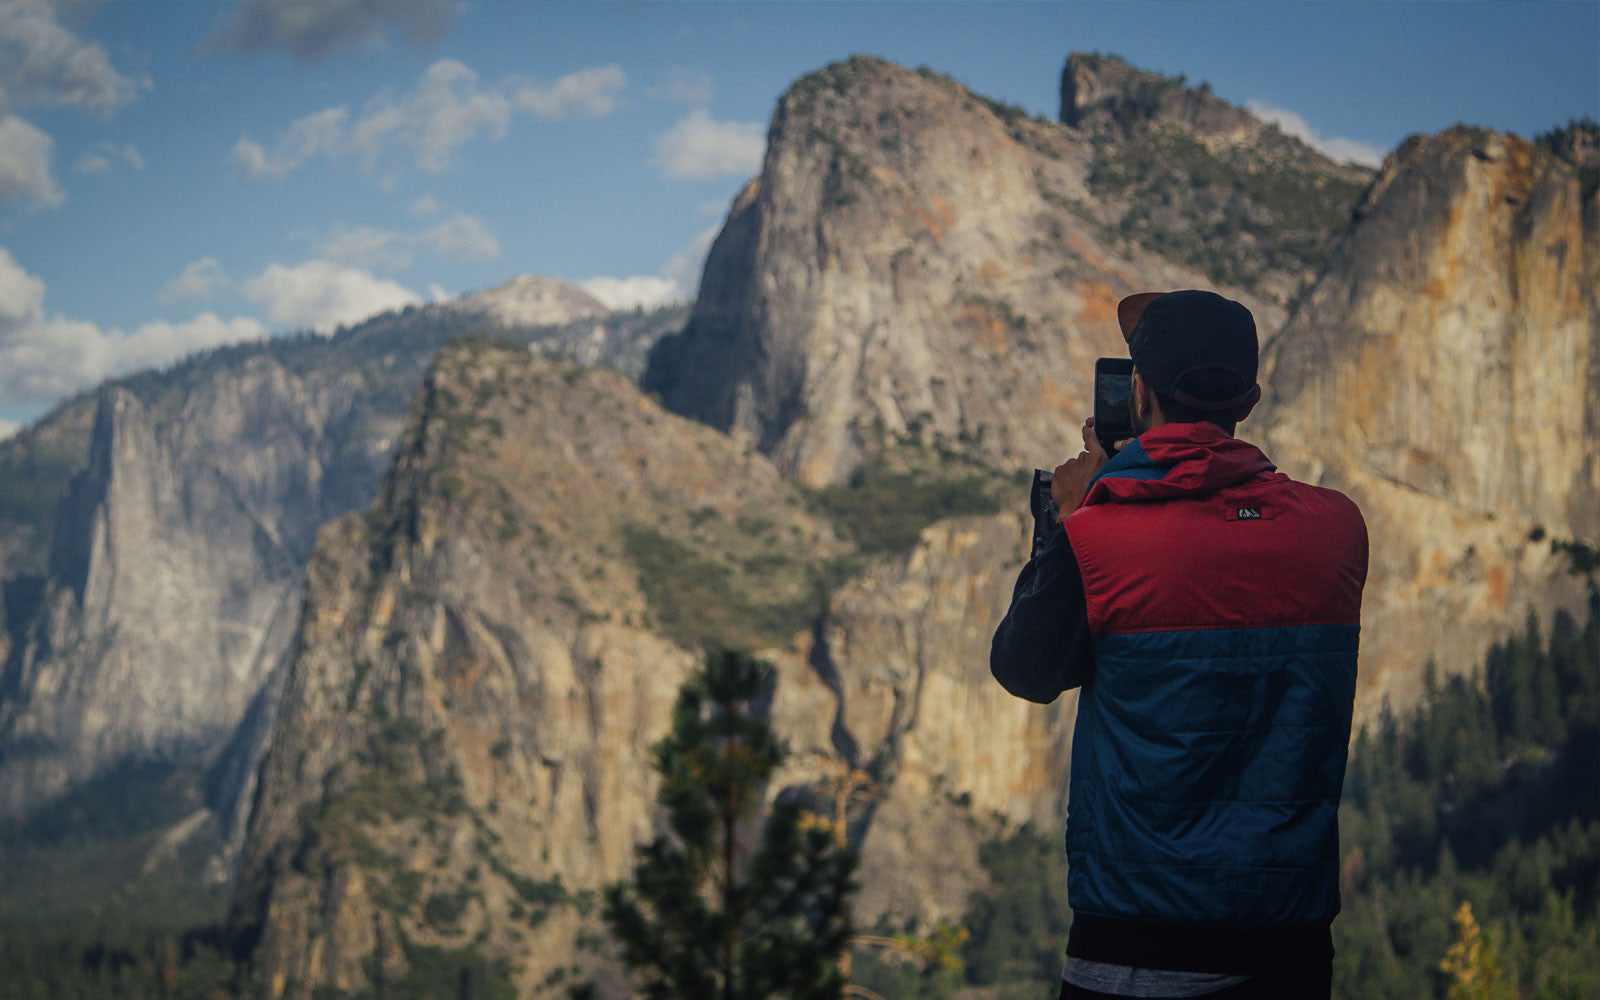 Tag @_cloudline on Instagram to share your hiking and outdoor adventures.